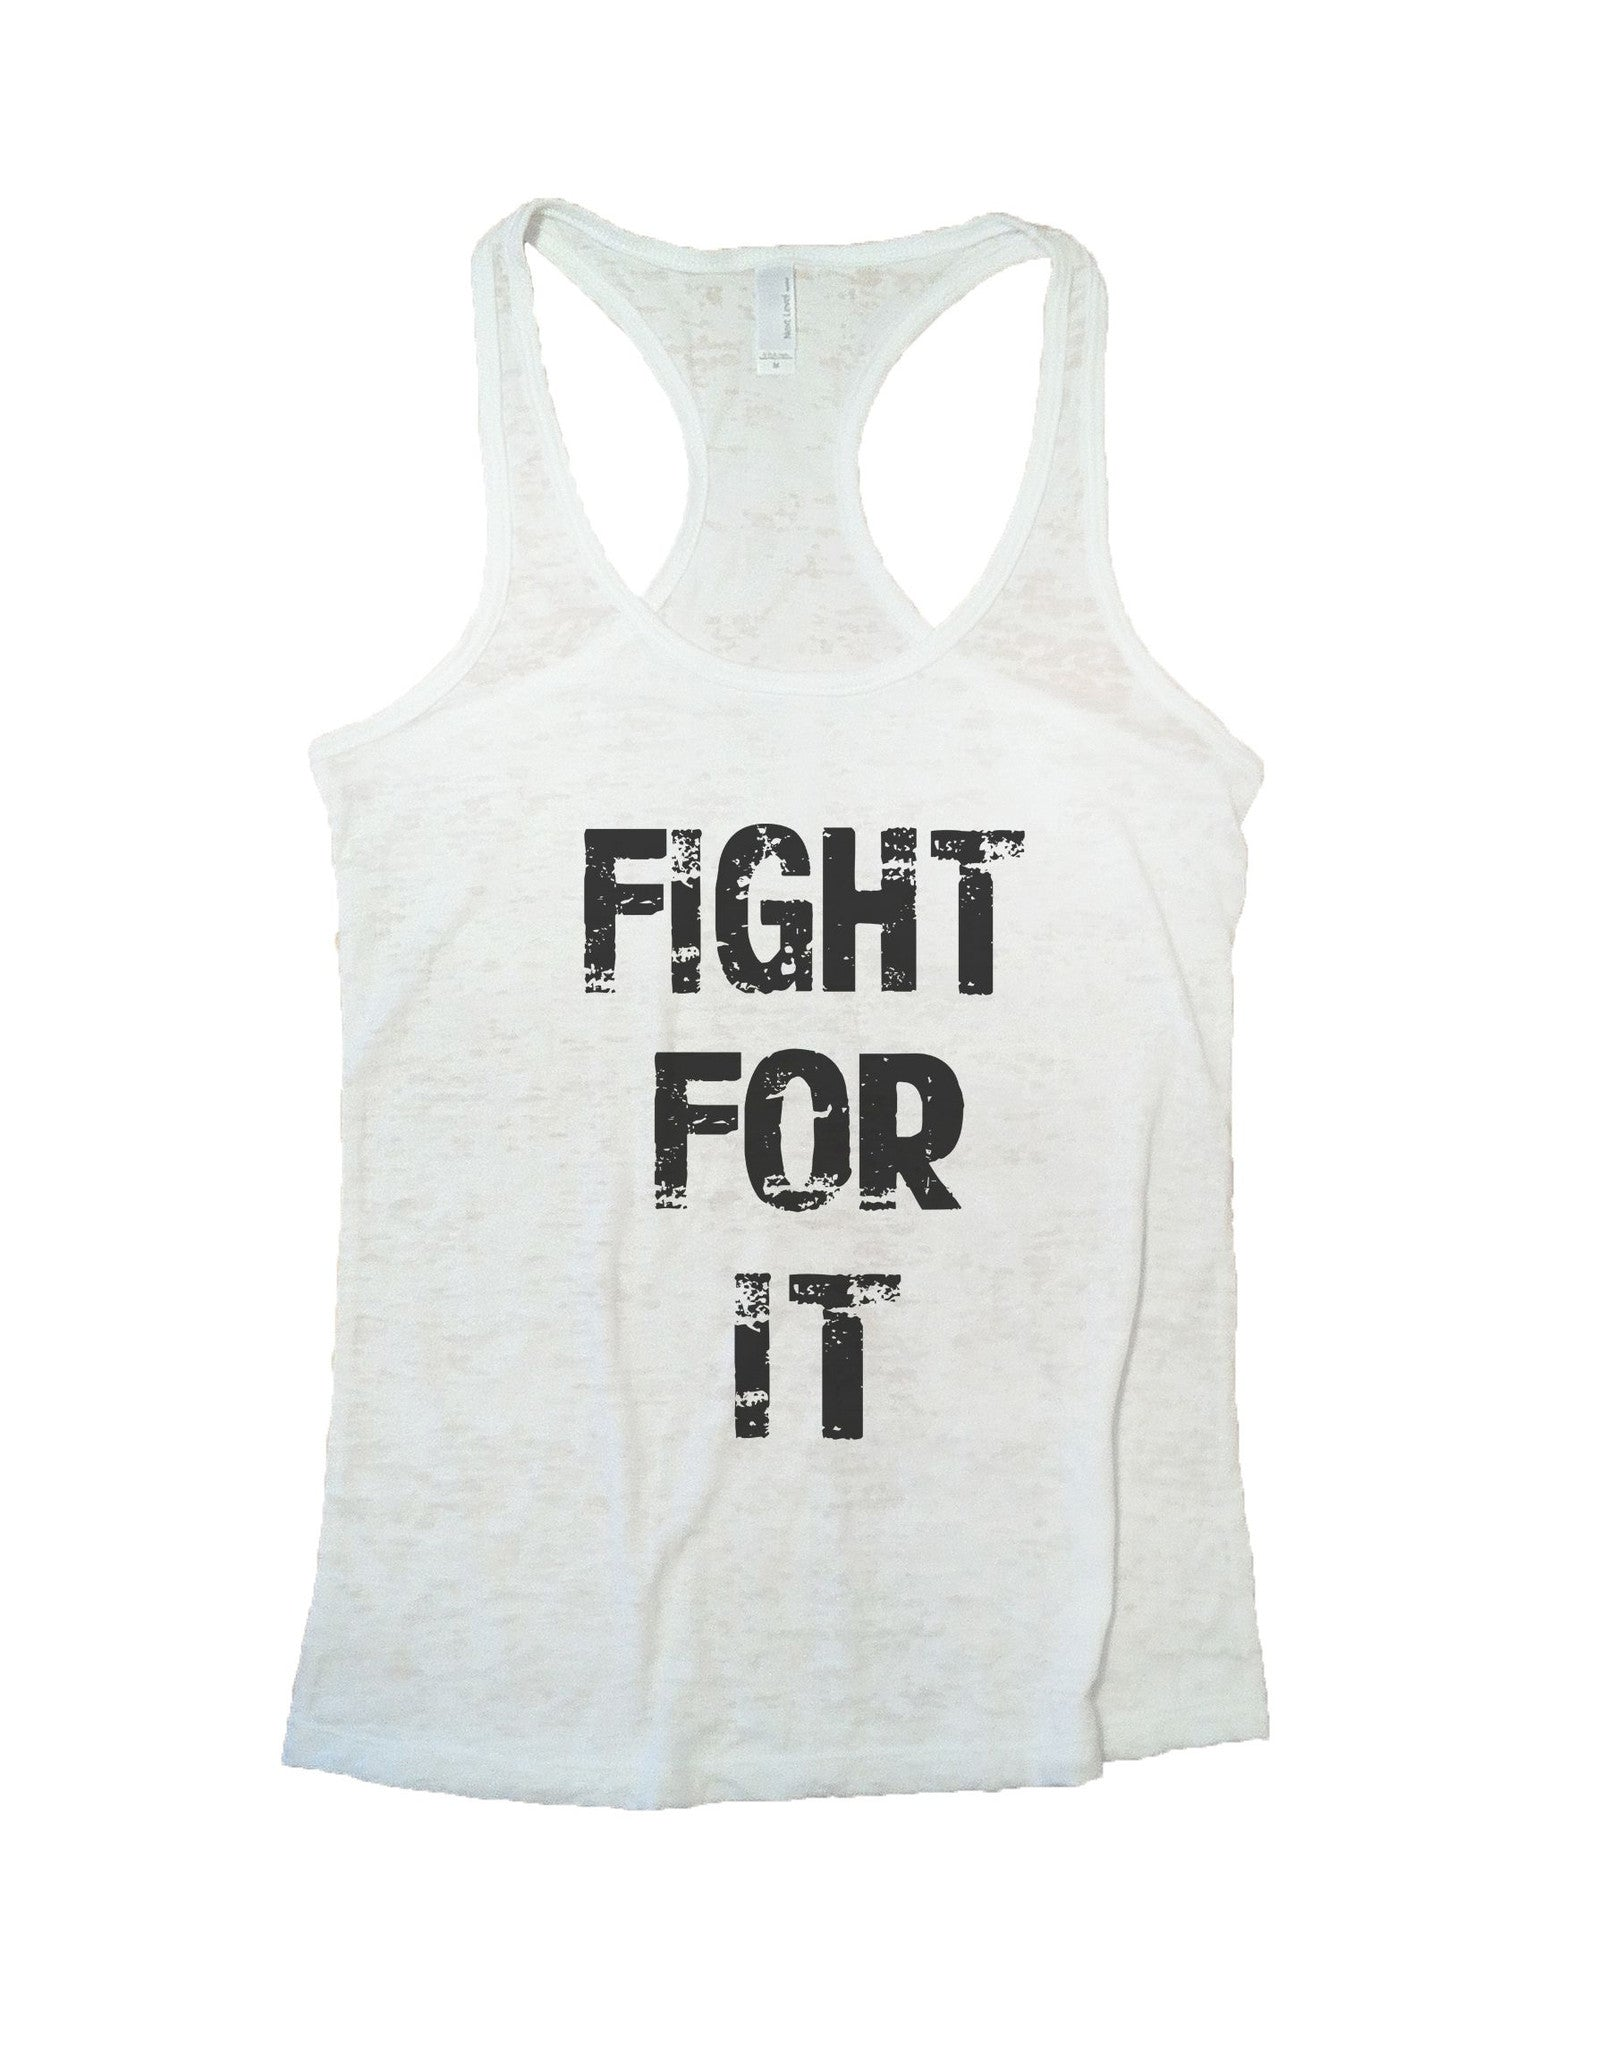 Fight For It Burnout Tank Top By BurnoutTankTops.com - 689 - Funny Shirts Tank Tops Burnouts and Triblends  - 5